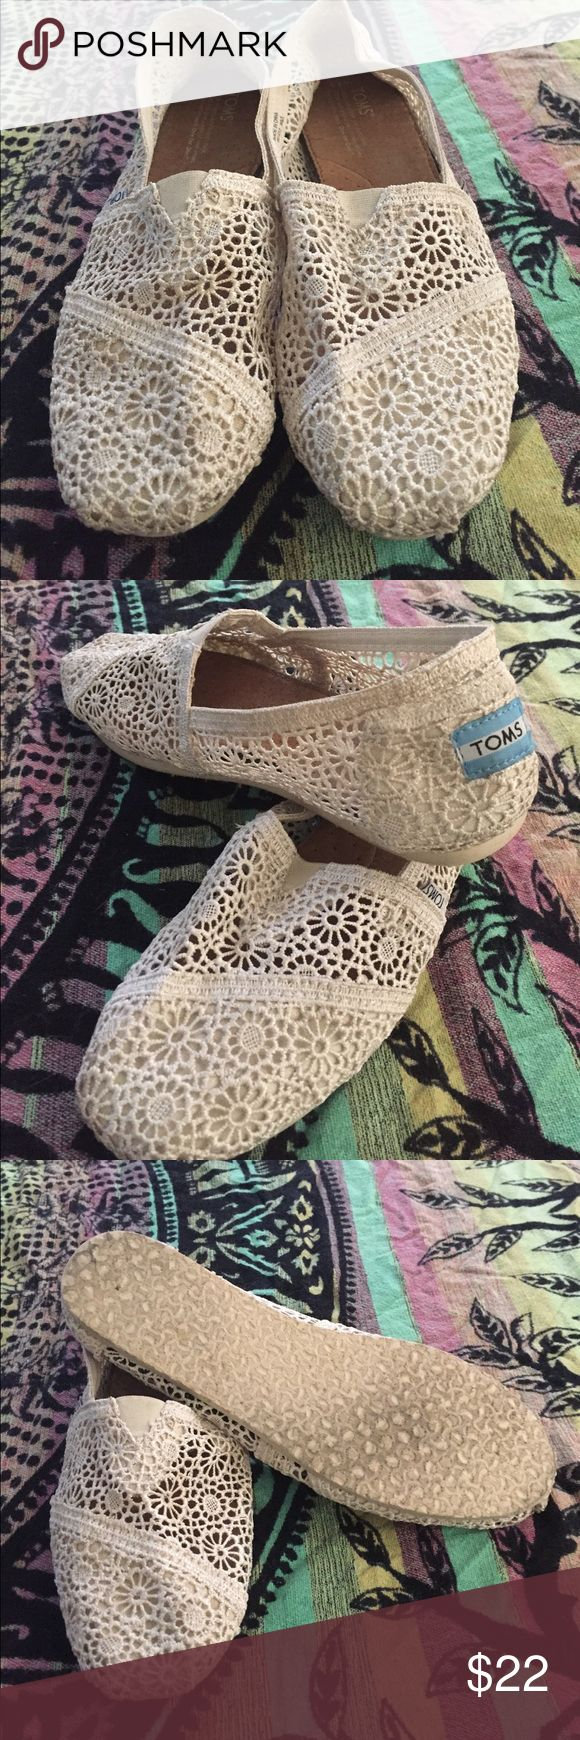 Women's Cream Lace Toms Cream women's toms only worn once for a wedding. Size 9.5 Toms Shoes Flats & Loafers